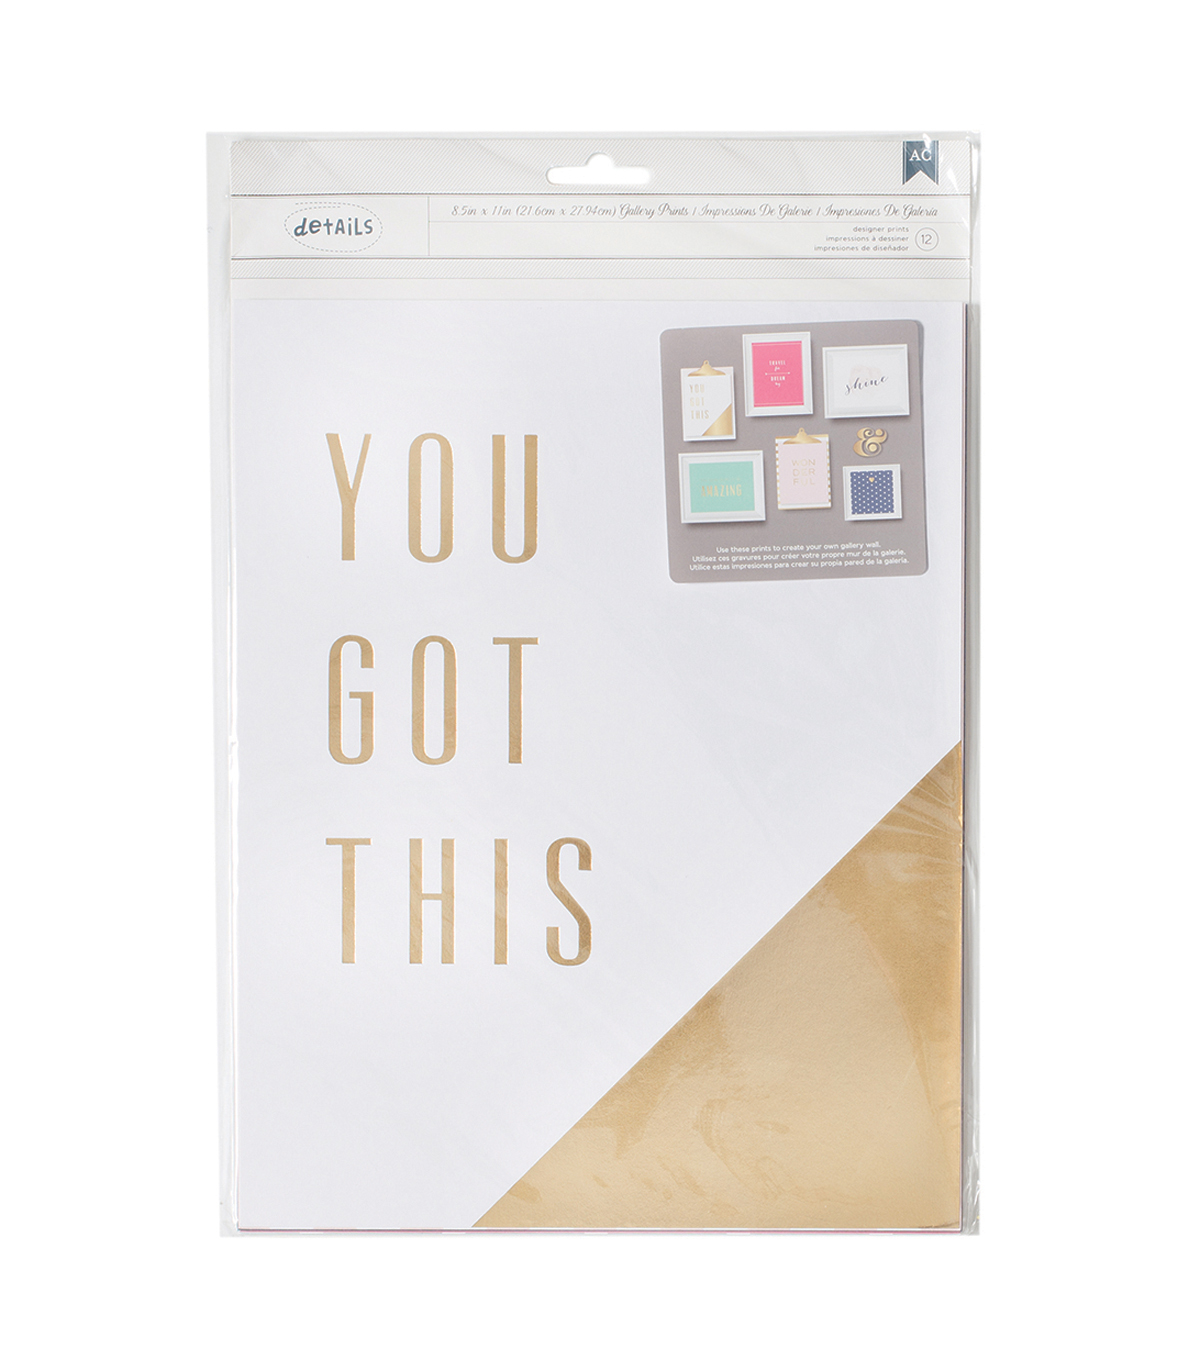 American Crafts™ Details Pack of 12 Wall Prints-You Got This